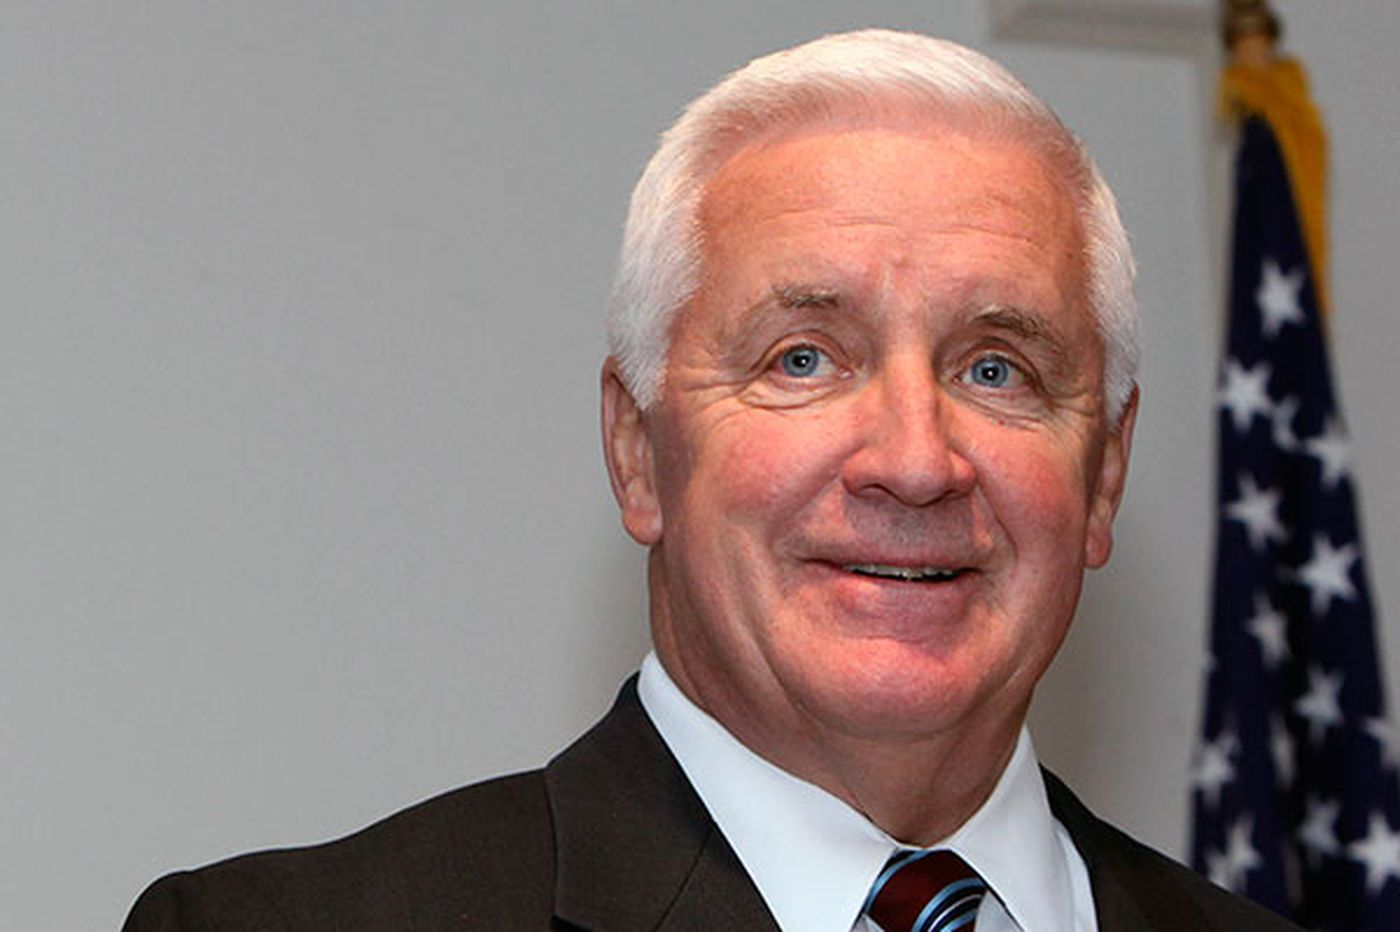 Both sides react to Corbett's support of gay rights bill